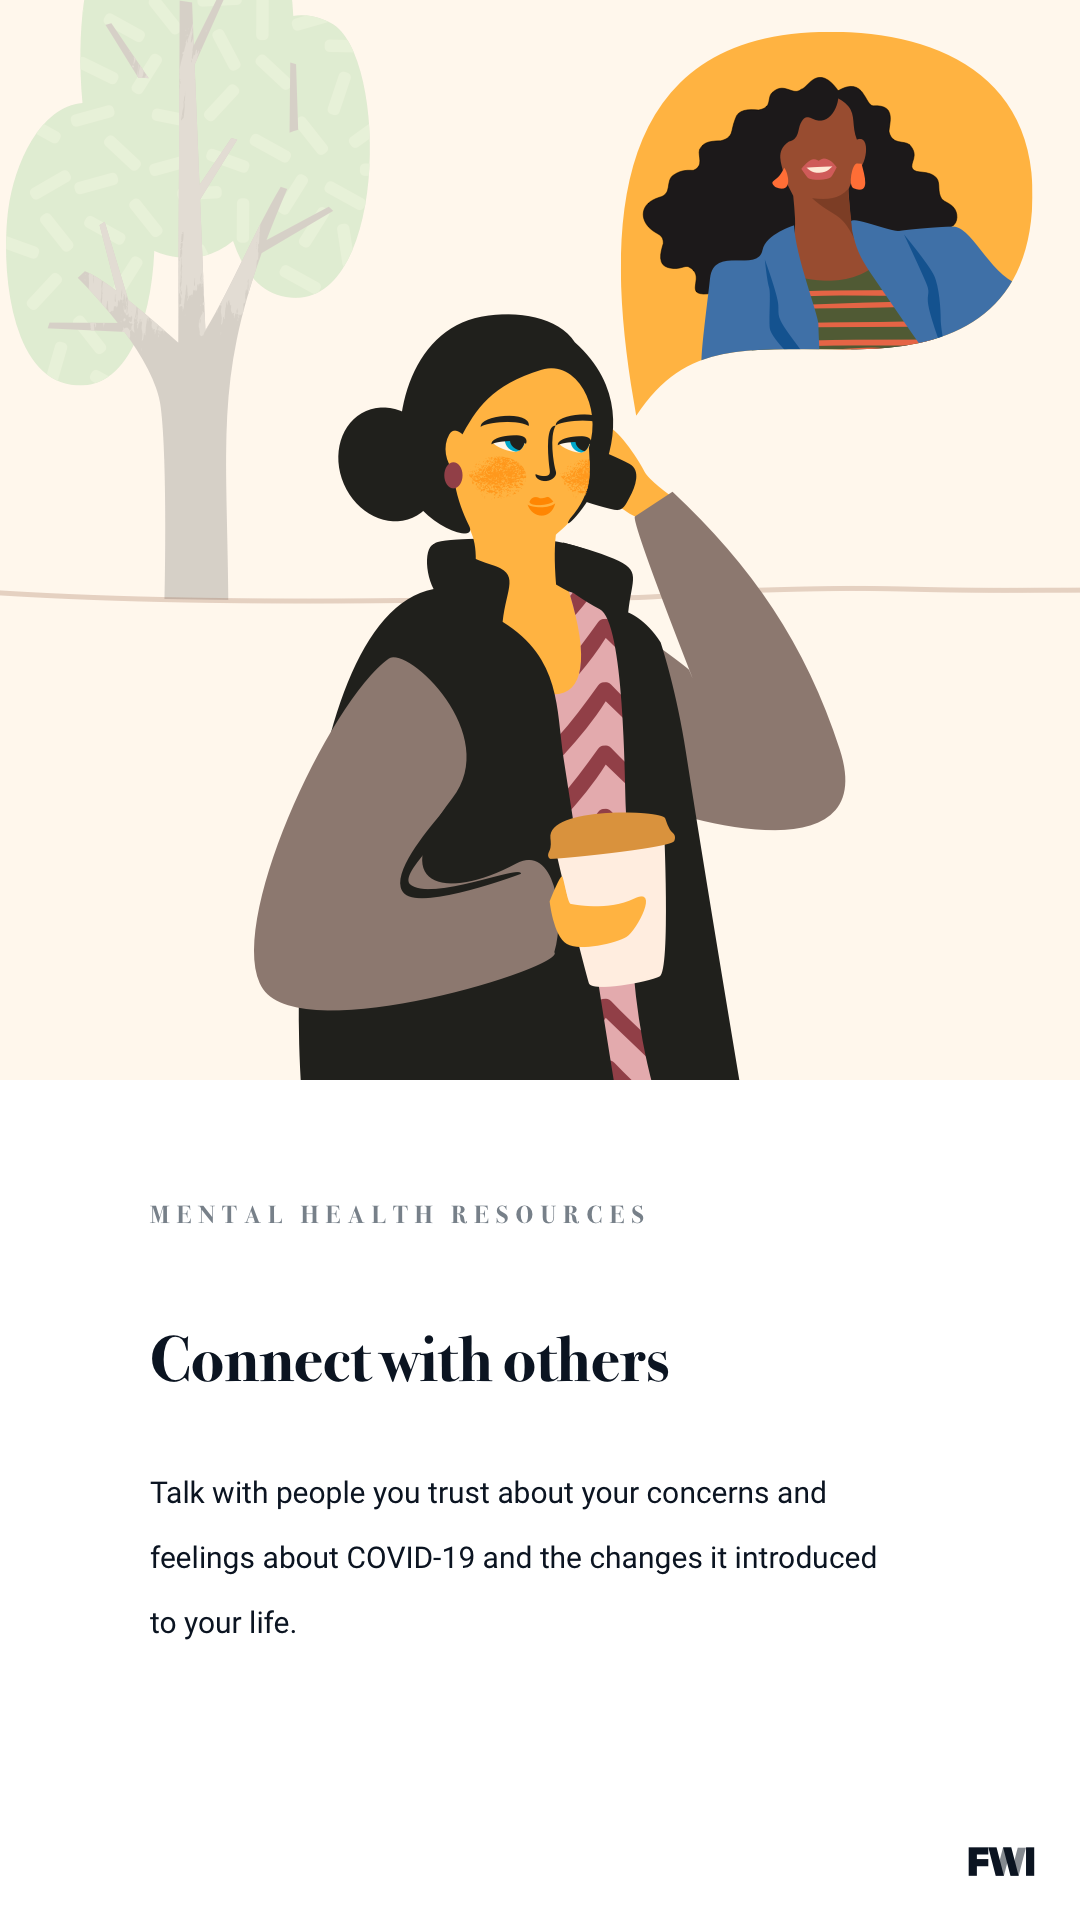 Connecting with others mental health tip vertical content download